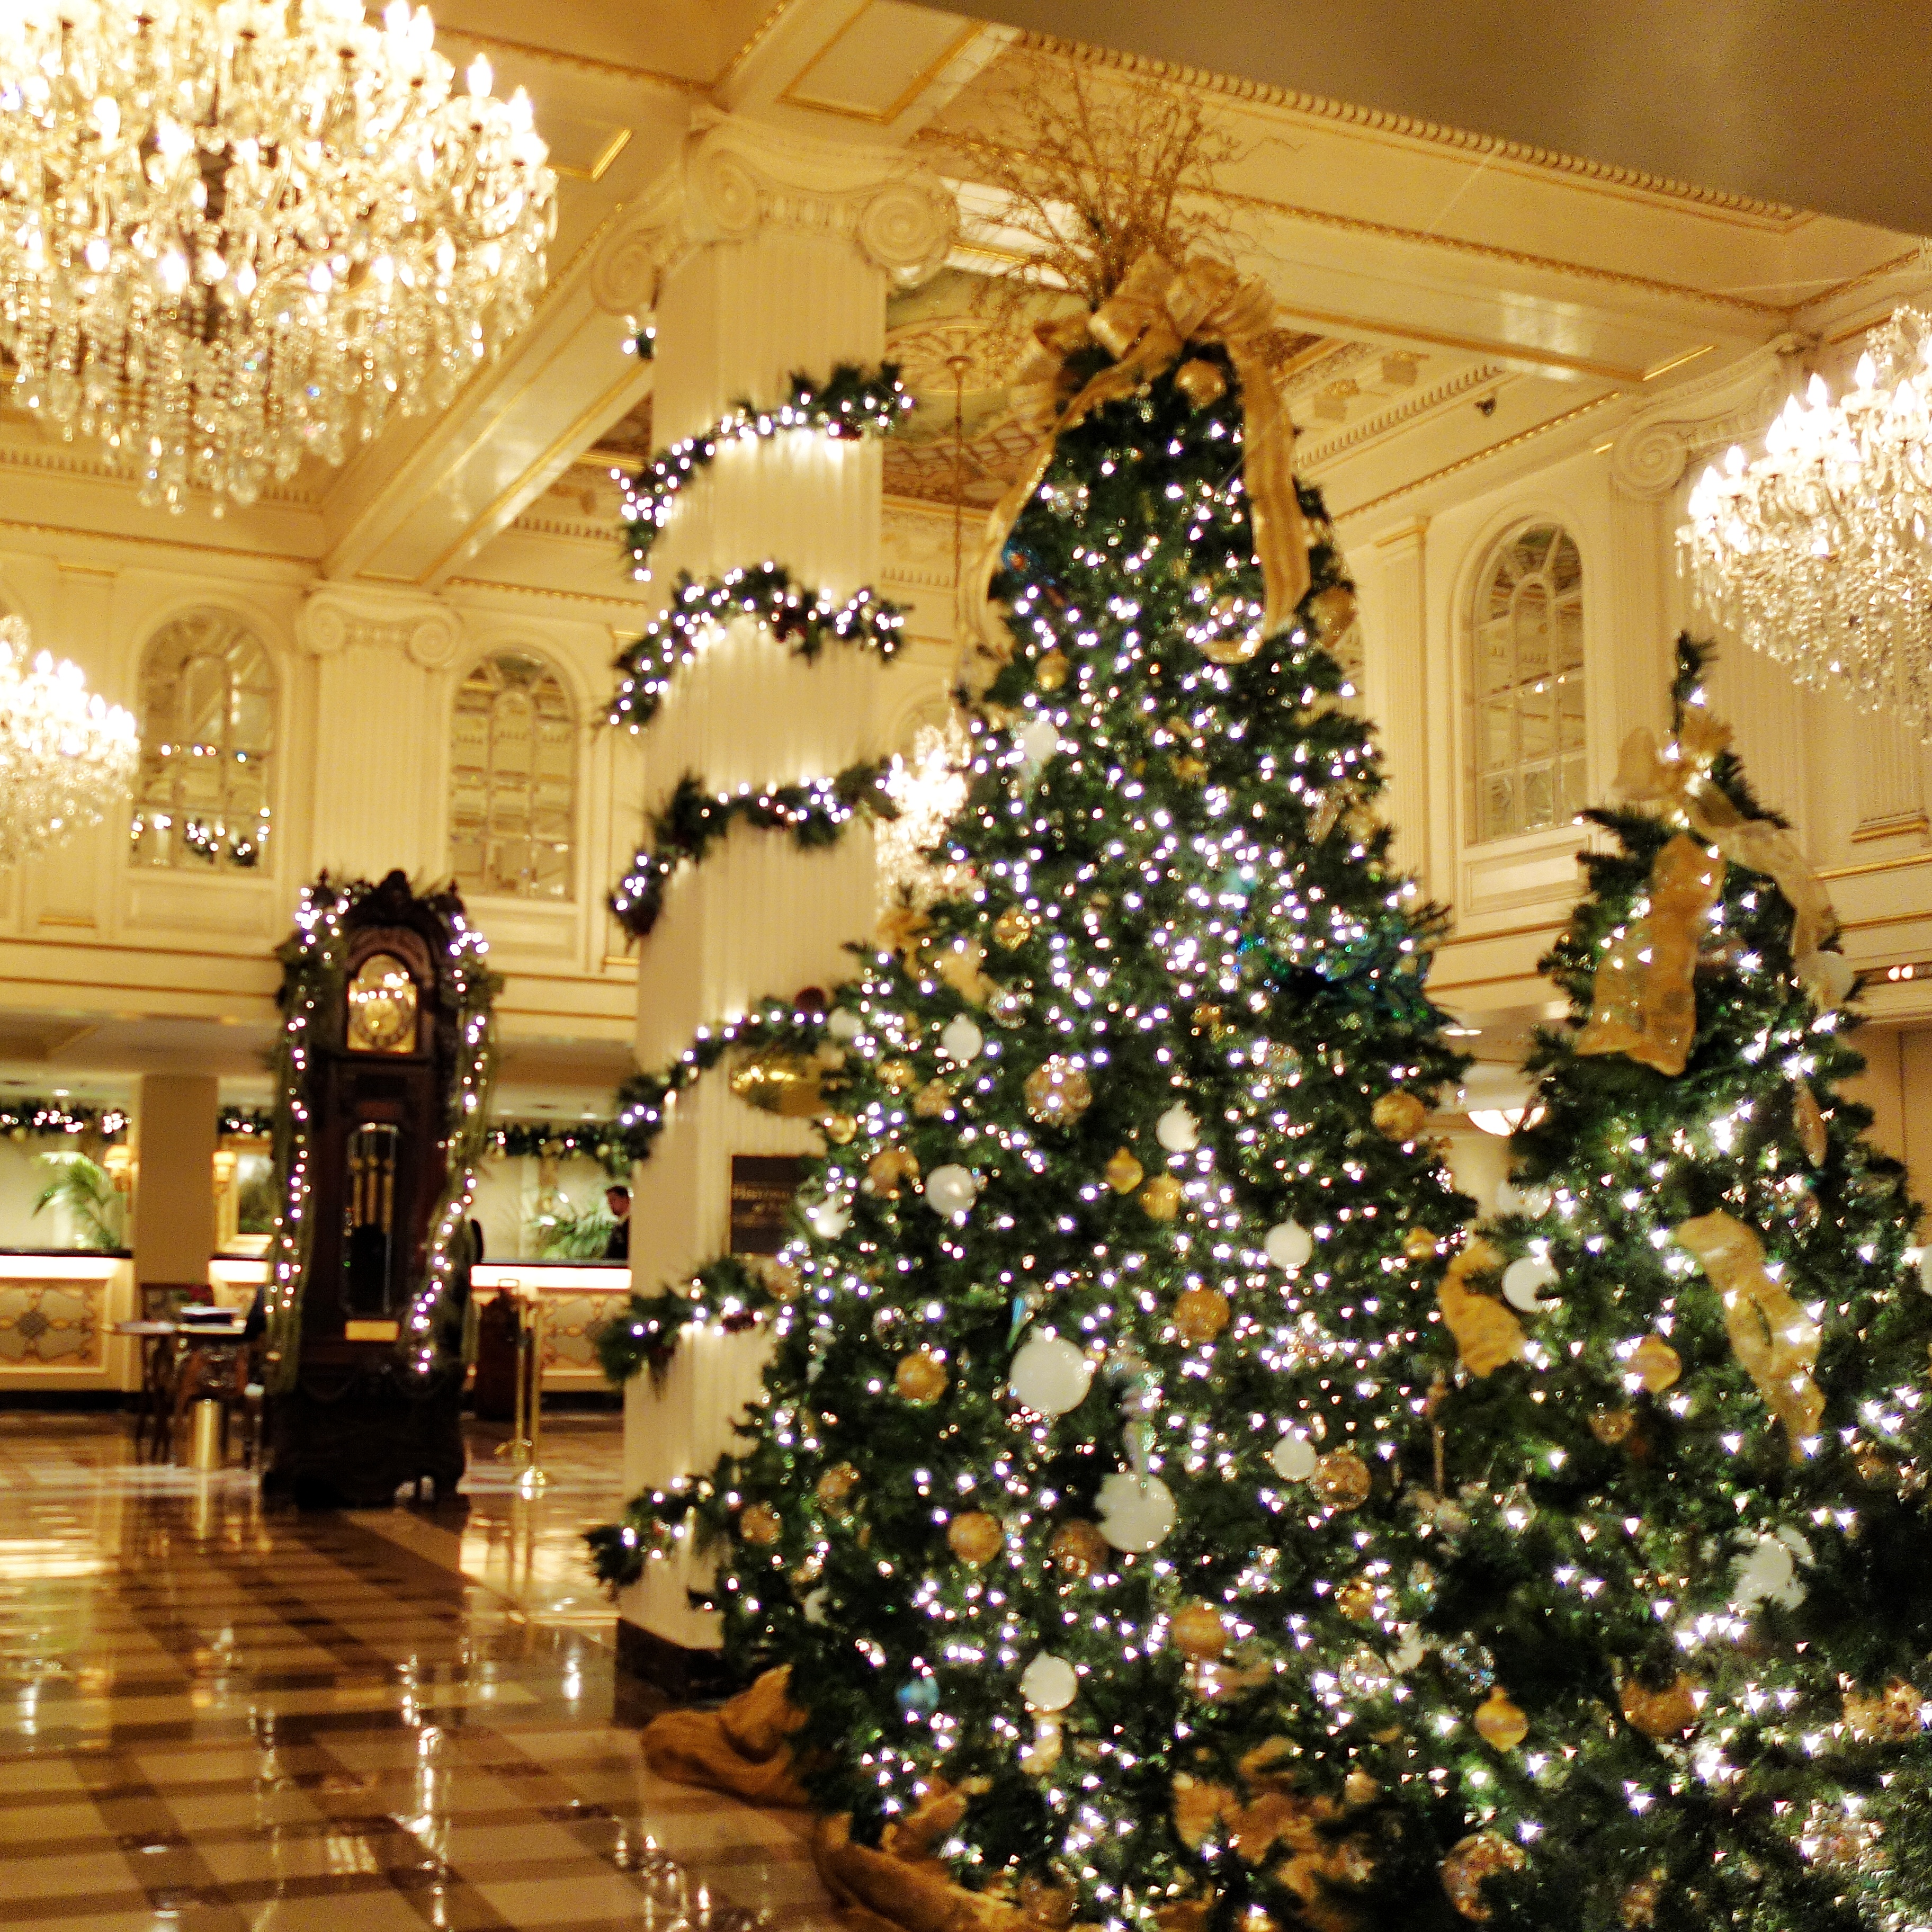 by Hotel Monteleone | Dec 12, 2013 | Calendar of Events | 1 comment